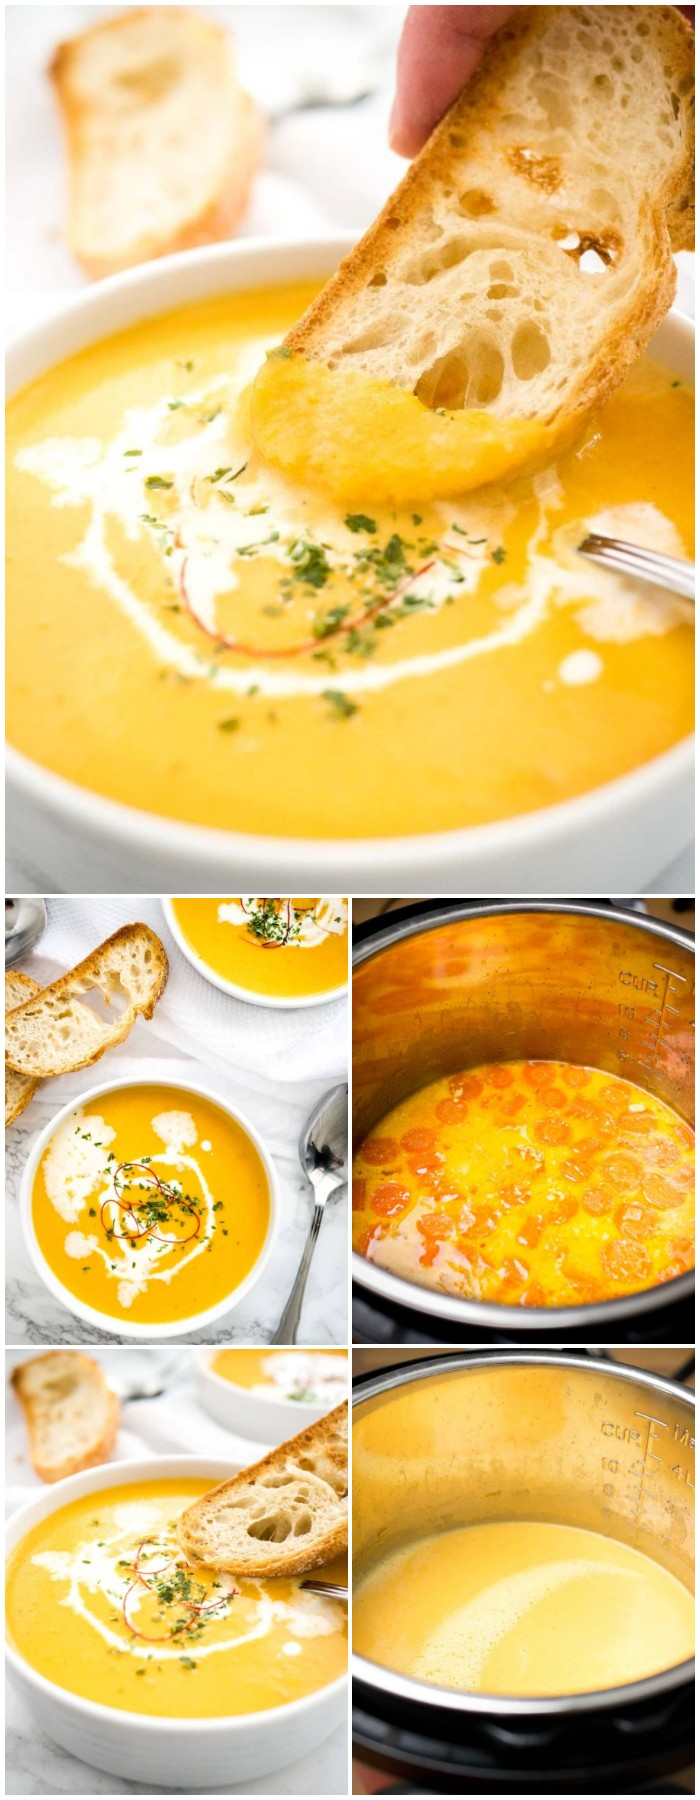 Instant Pot Carrot Soup Recipe